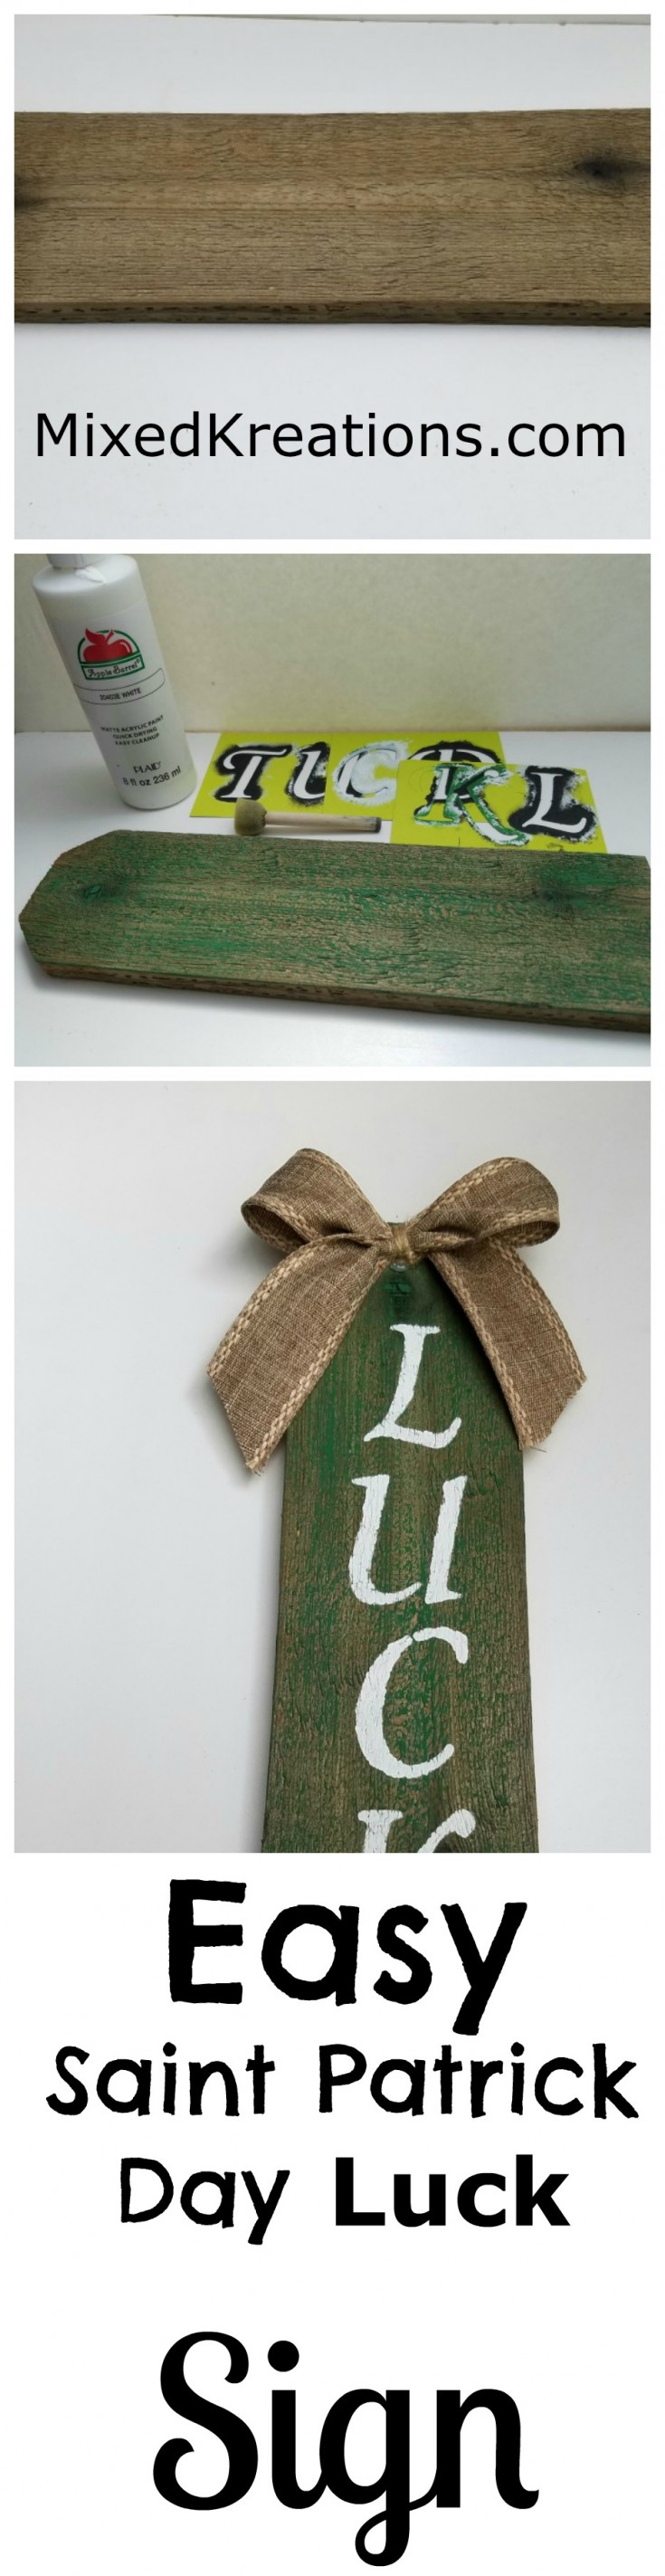 Easy Saint Patrick Day Luck Sign Pinnable